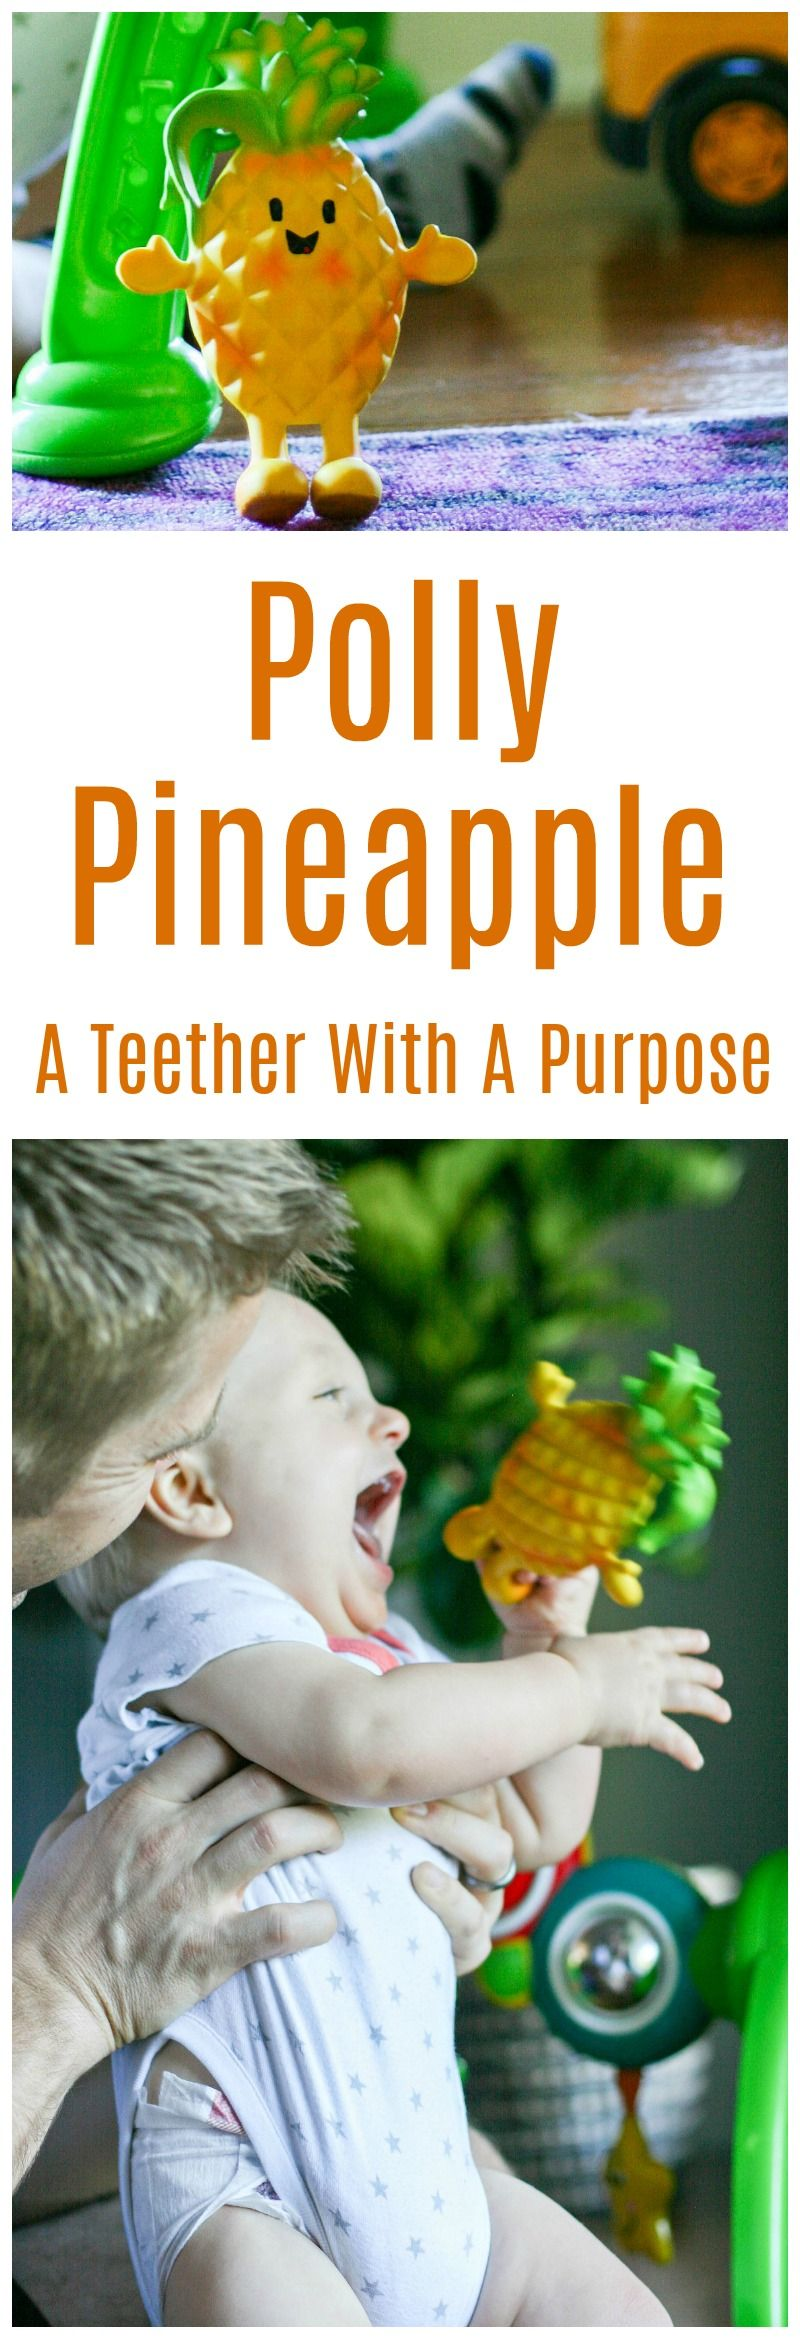 Polly Pineapple The Teether With A Greater Purpose